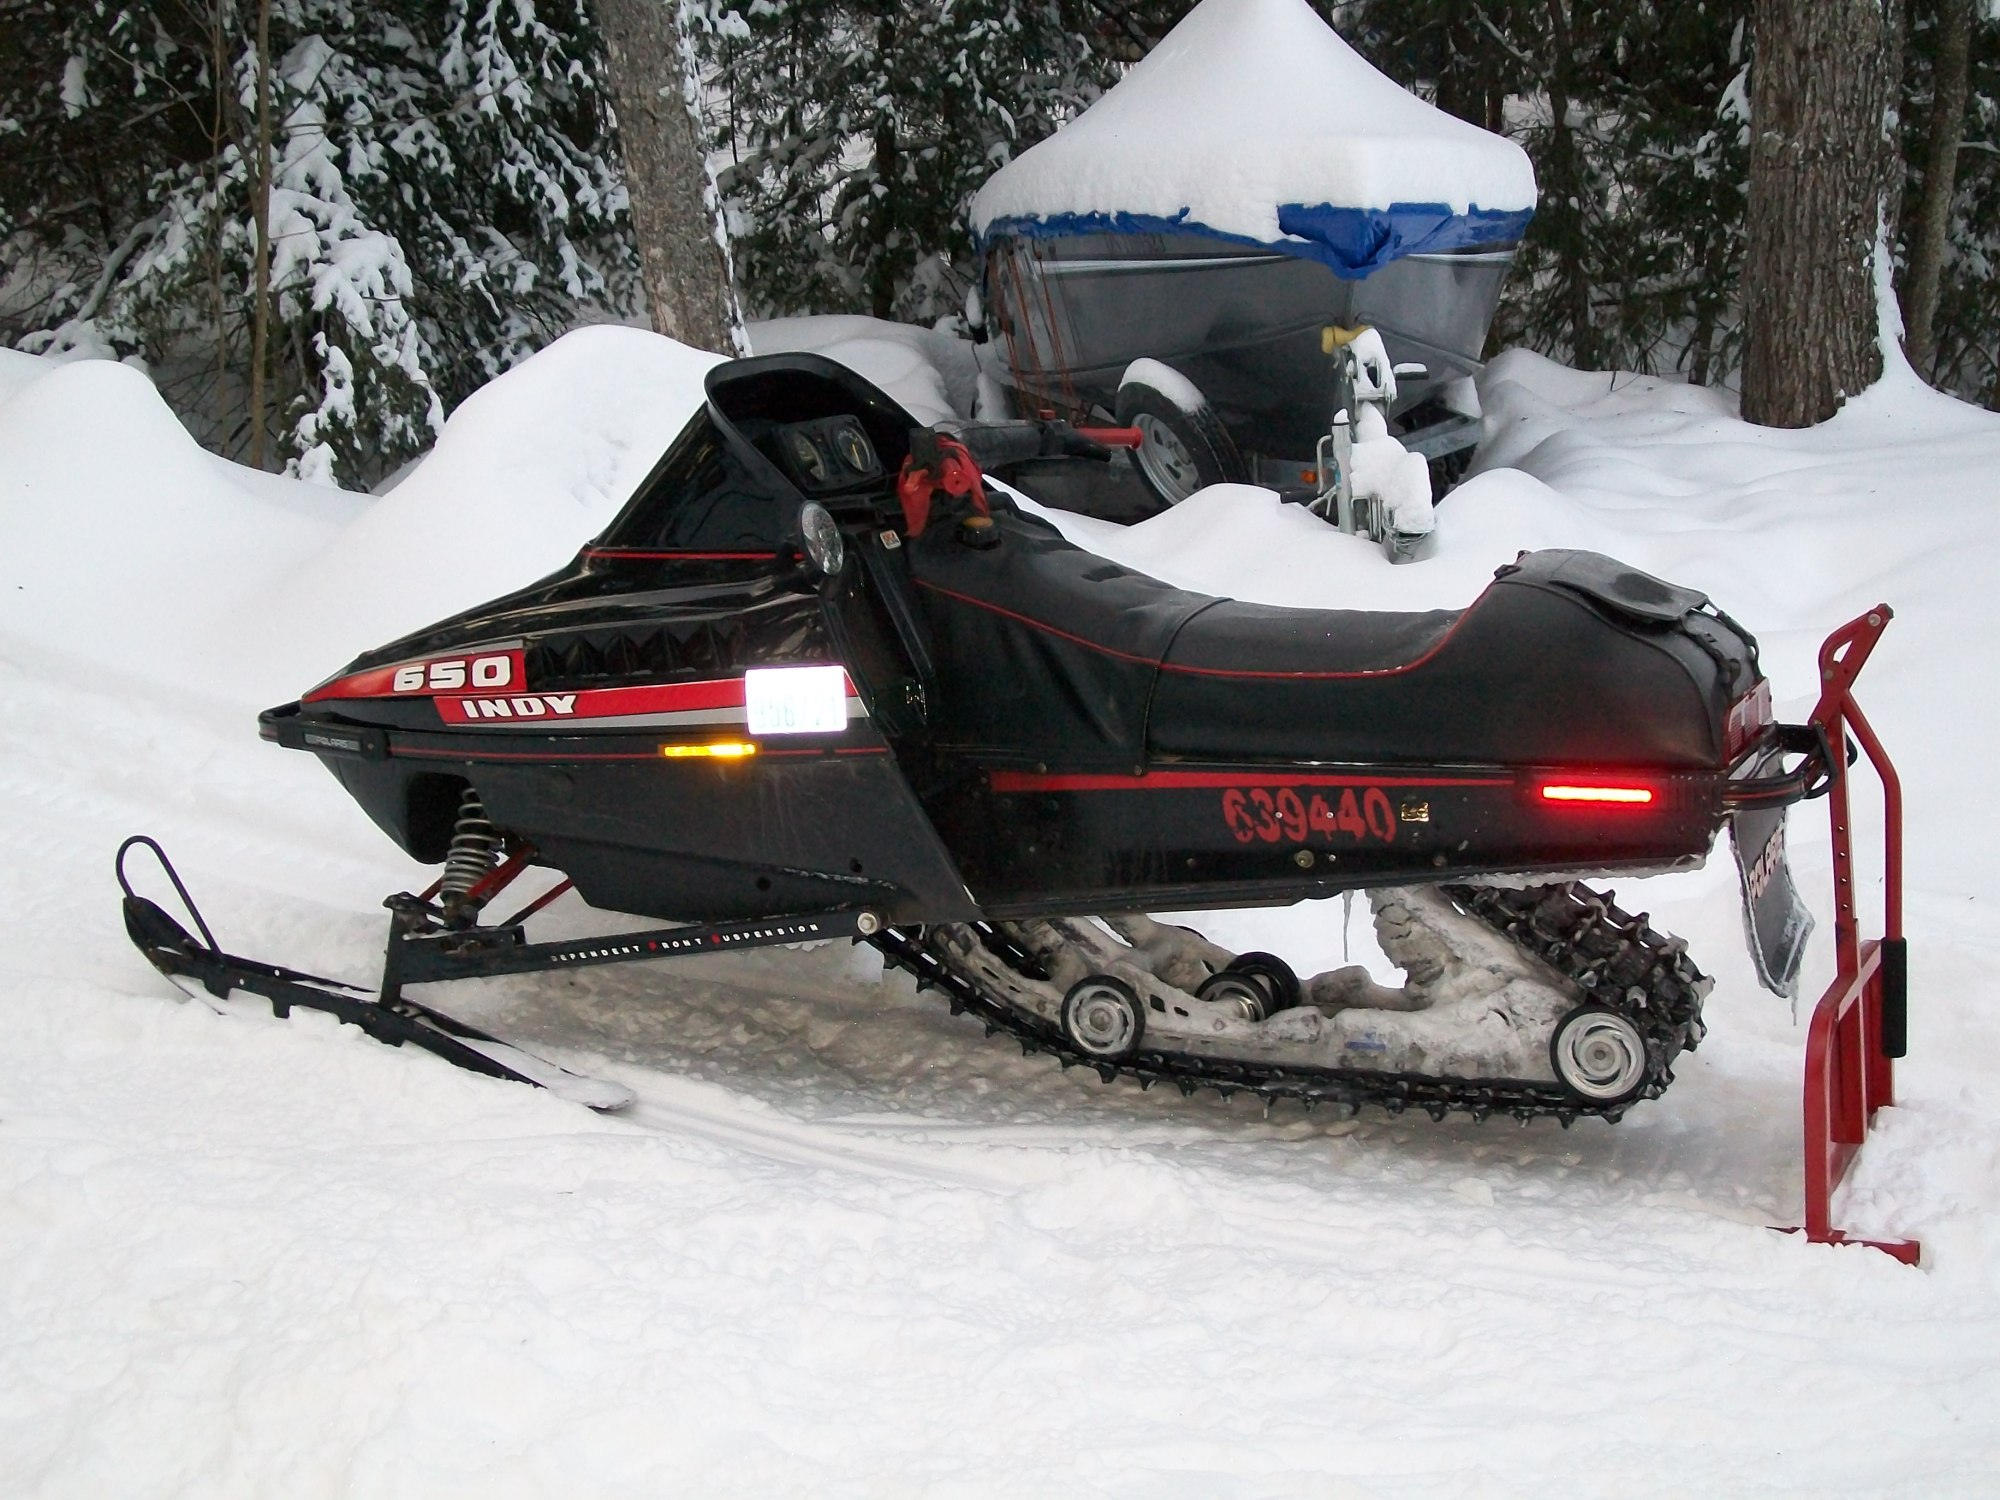 hight resolution of for sale in canada 1990 polaris indy 650 150000